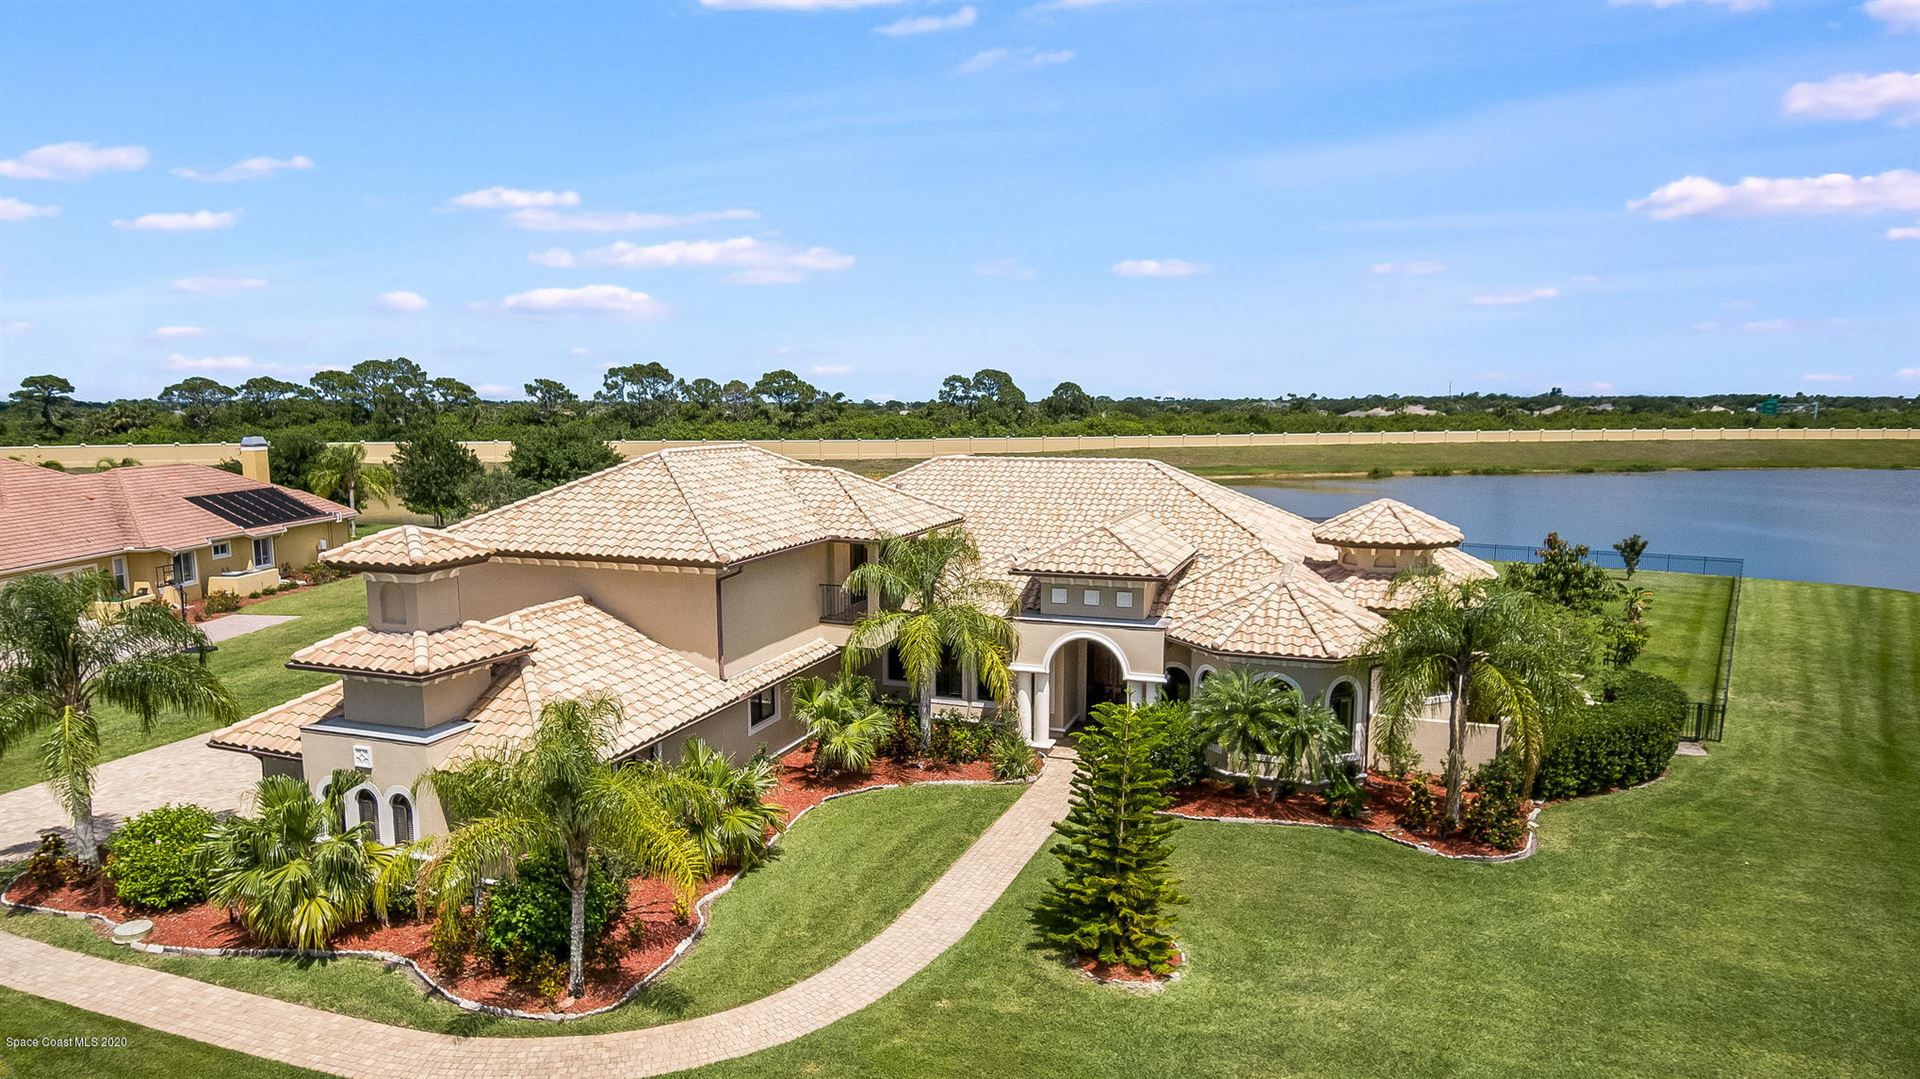 2942 Bellwind Circle, Rockledge, FL 32955 - #: 874954